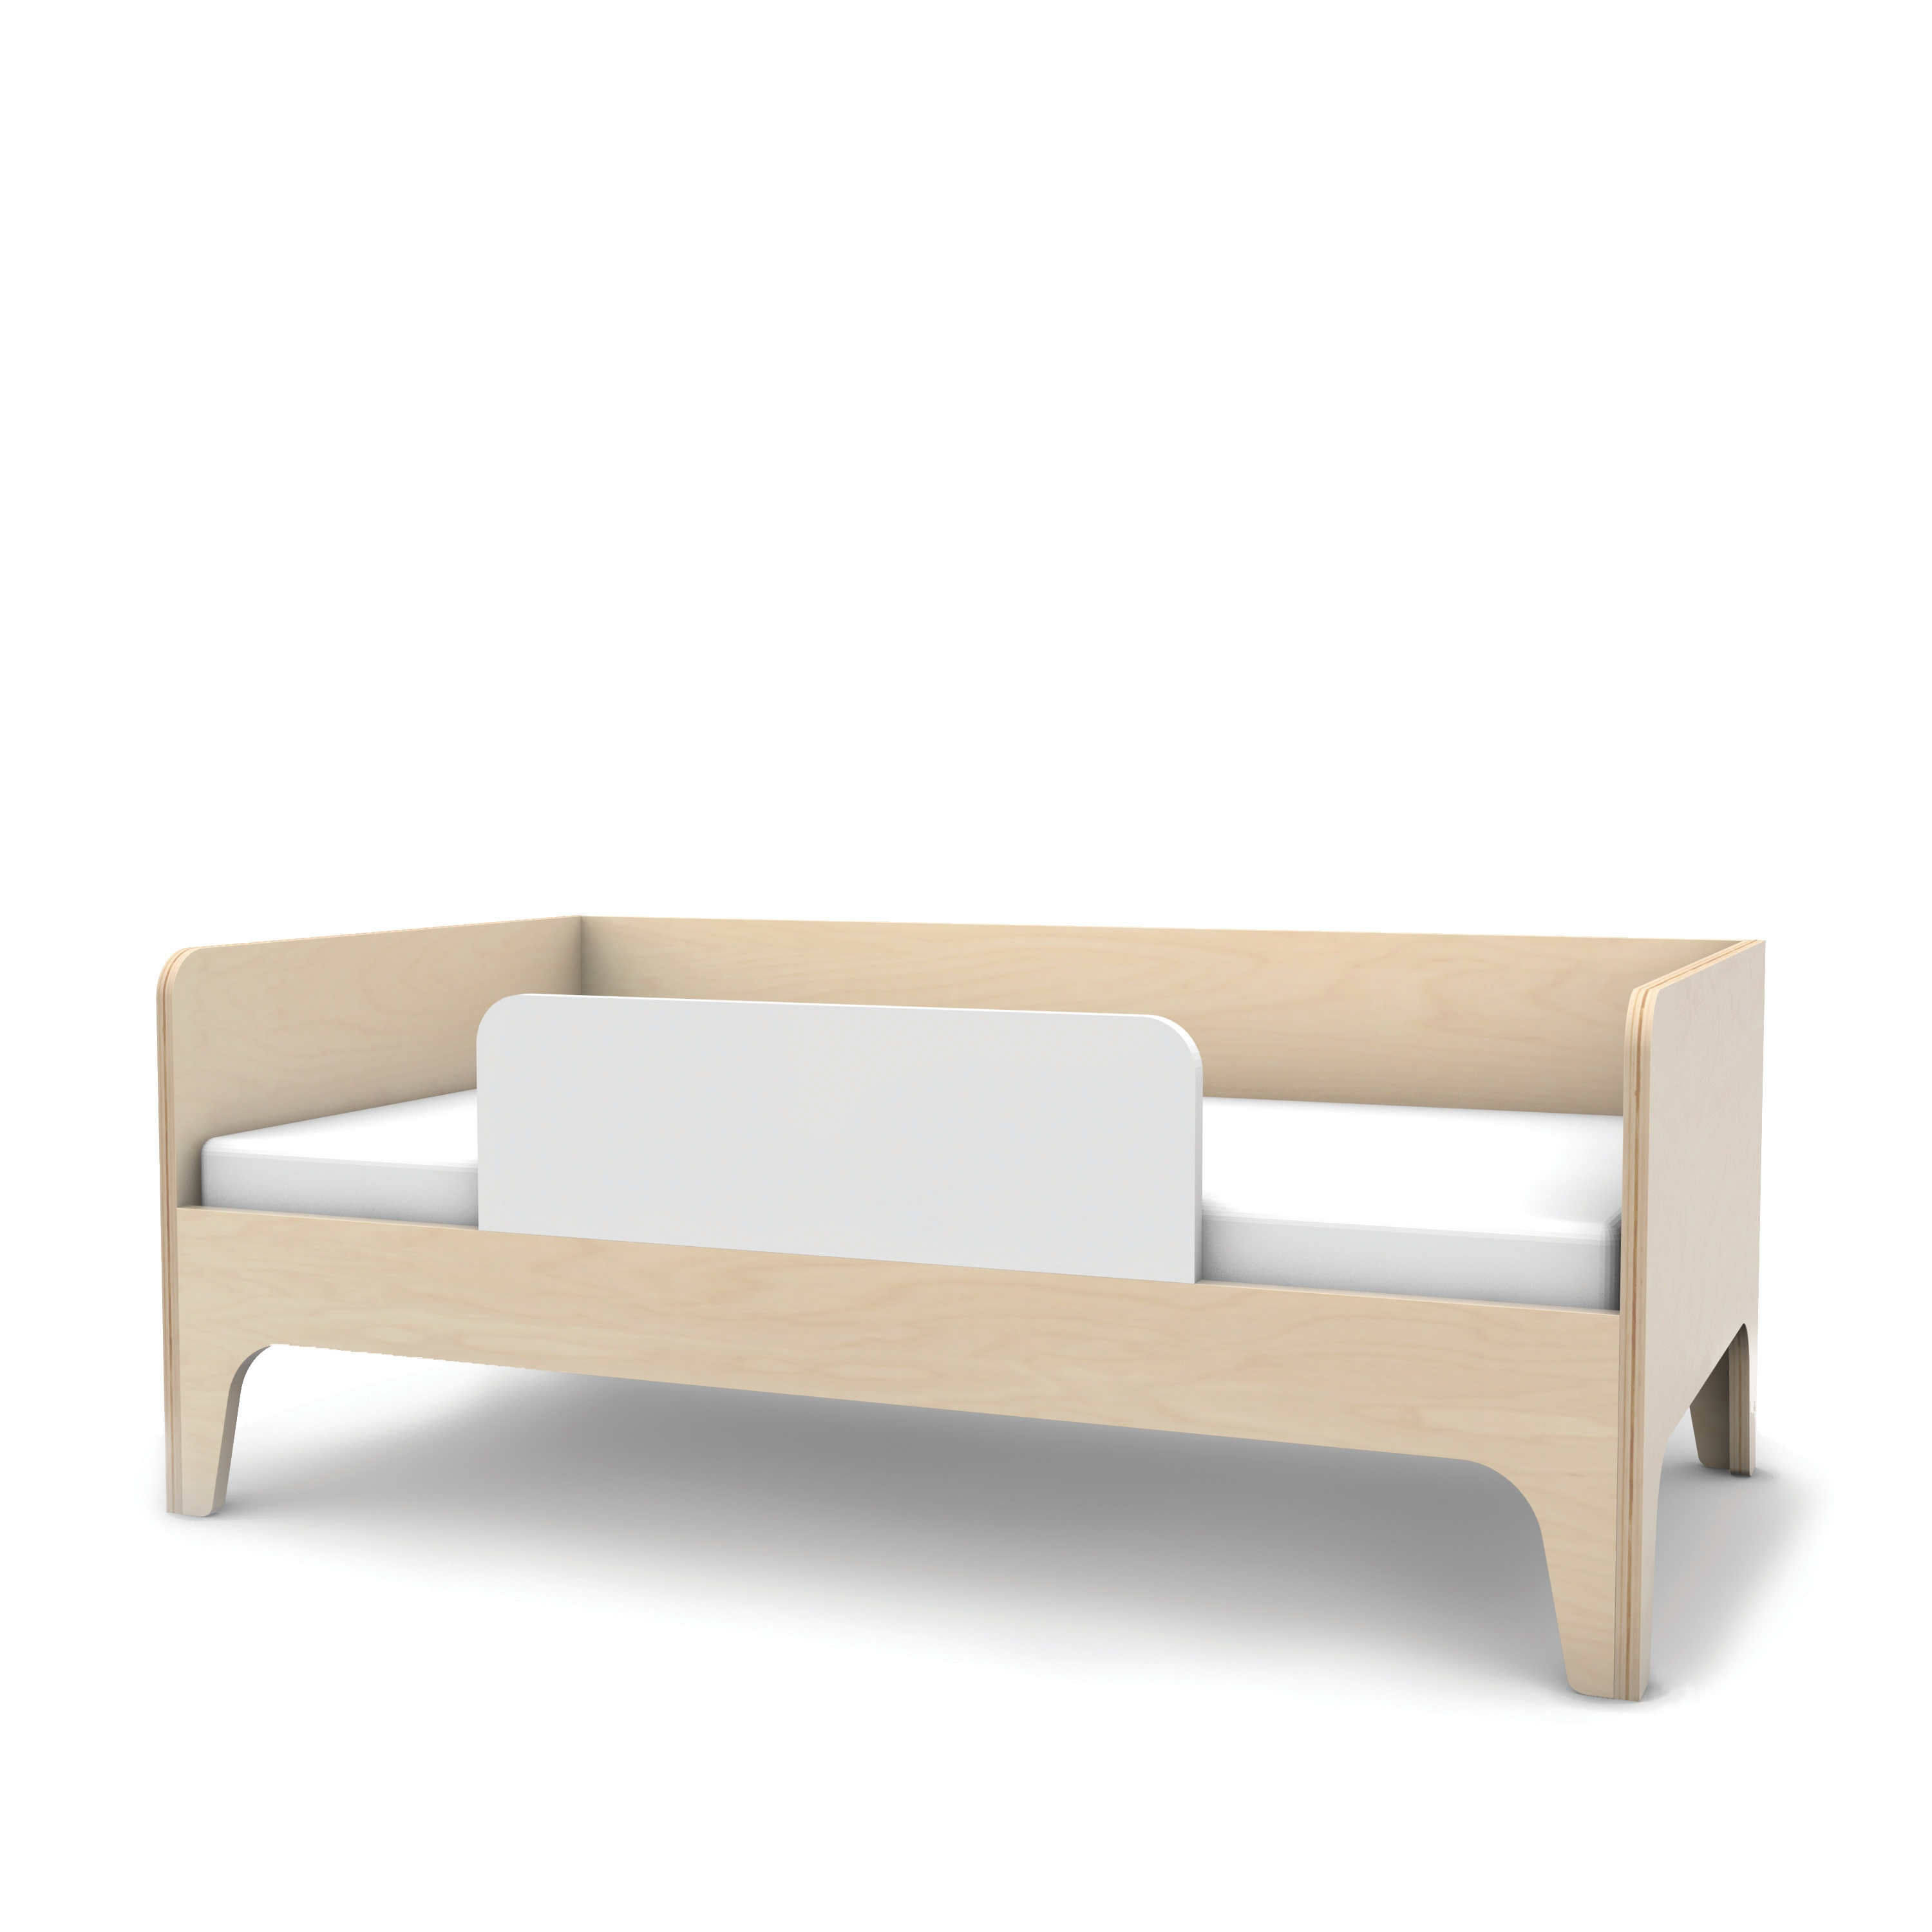 Furniture Kids Love Design # Muebles Kutikai